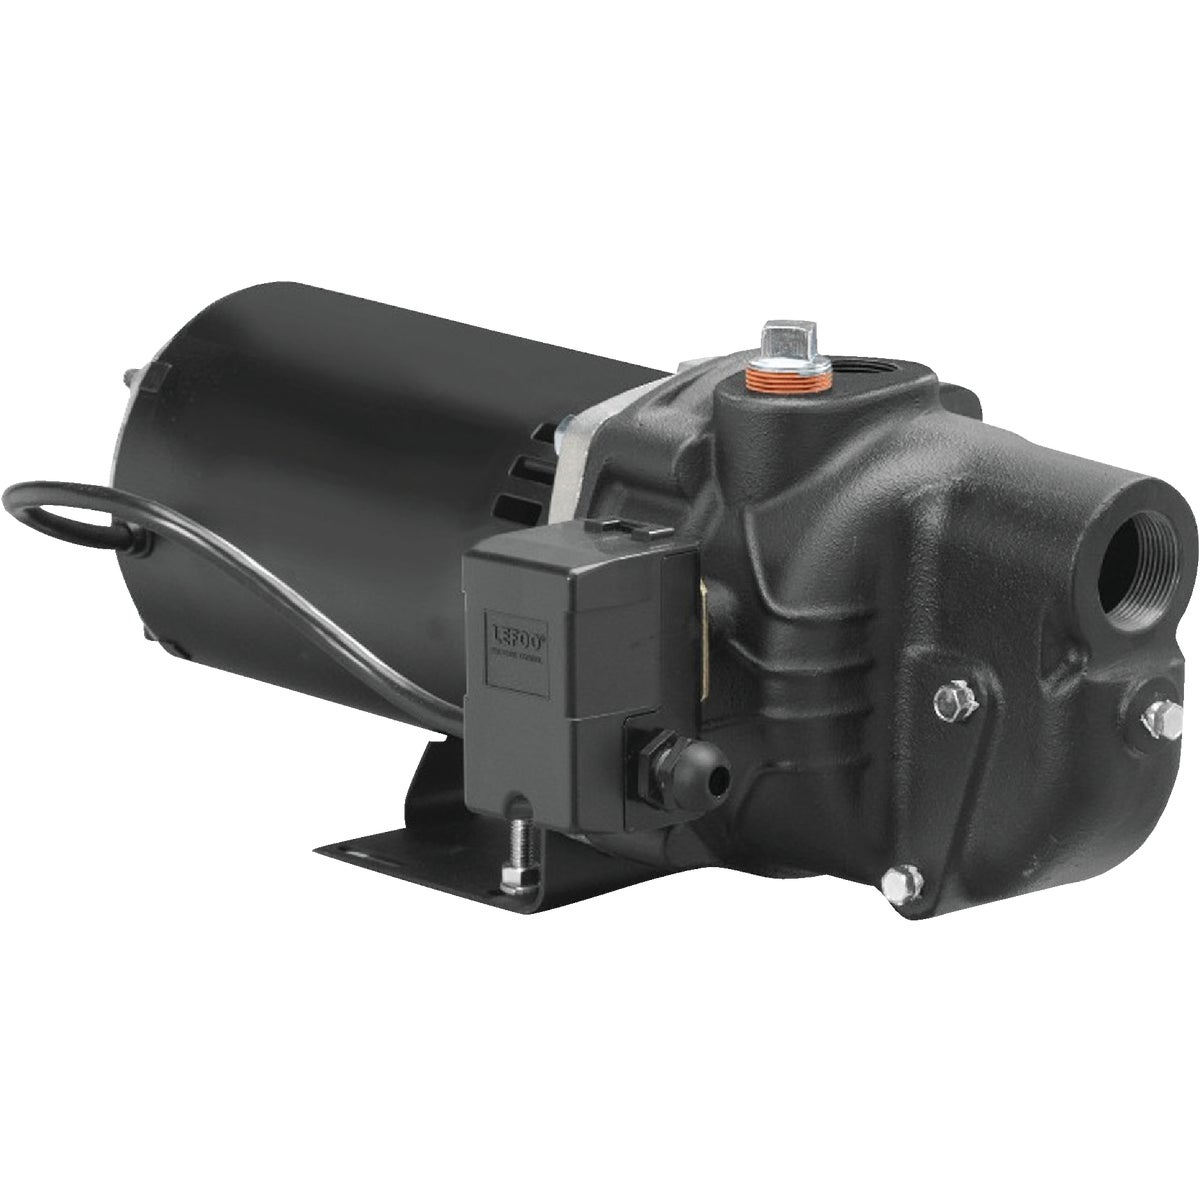 1/2HP SHLW WELL JET PUMP - SWS50 by Wayne Water Systems